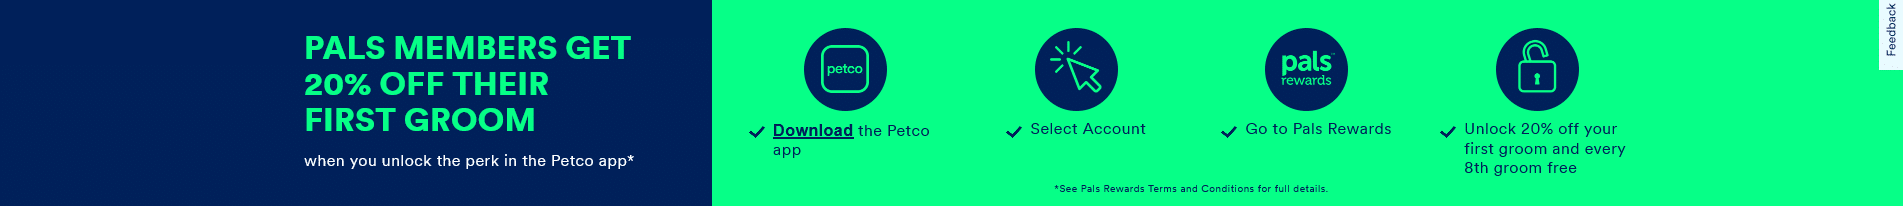 Petco offers their first-ever grooming coupon